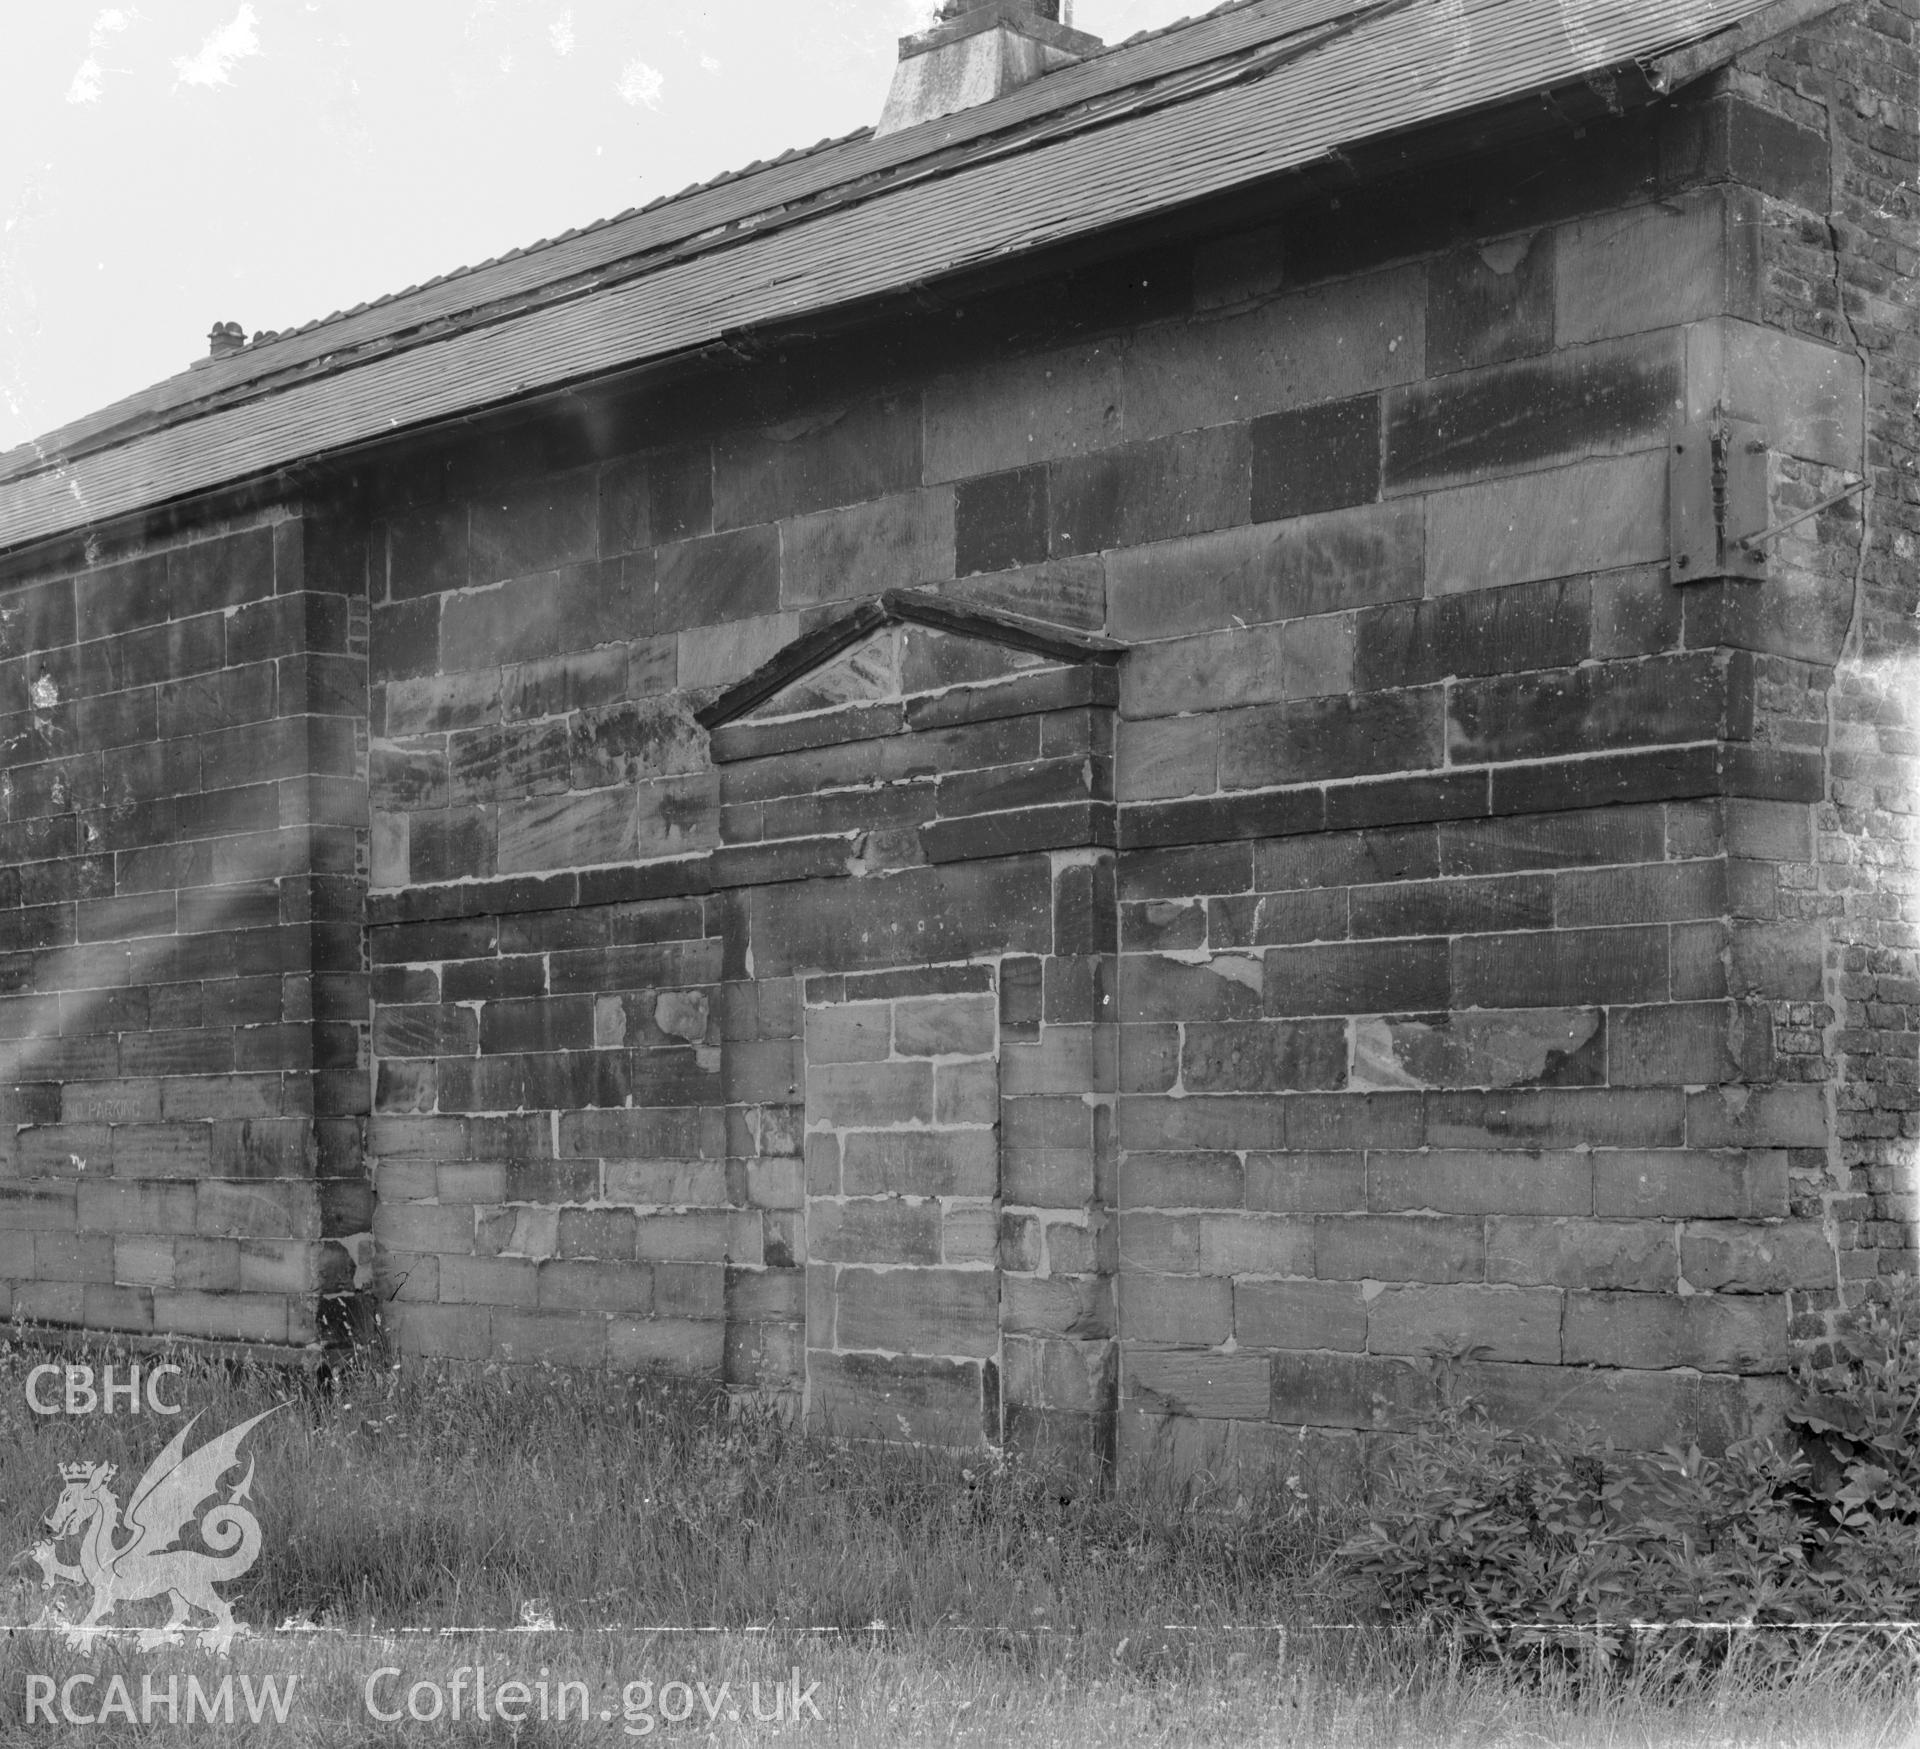 D.O.E photograph of Flint Gaol - south east low wing wall with blocked door and later heightening. In castle outer ward (since removed).